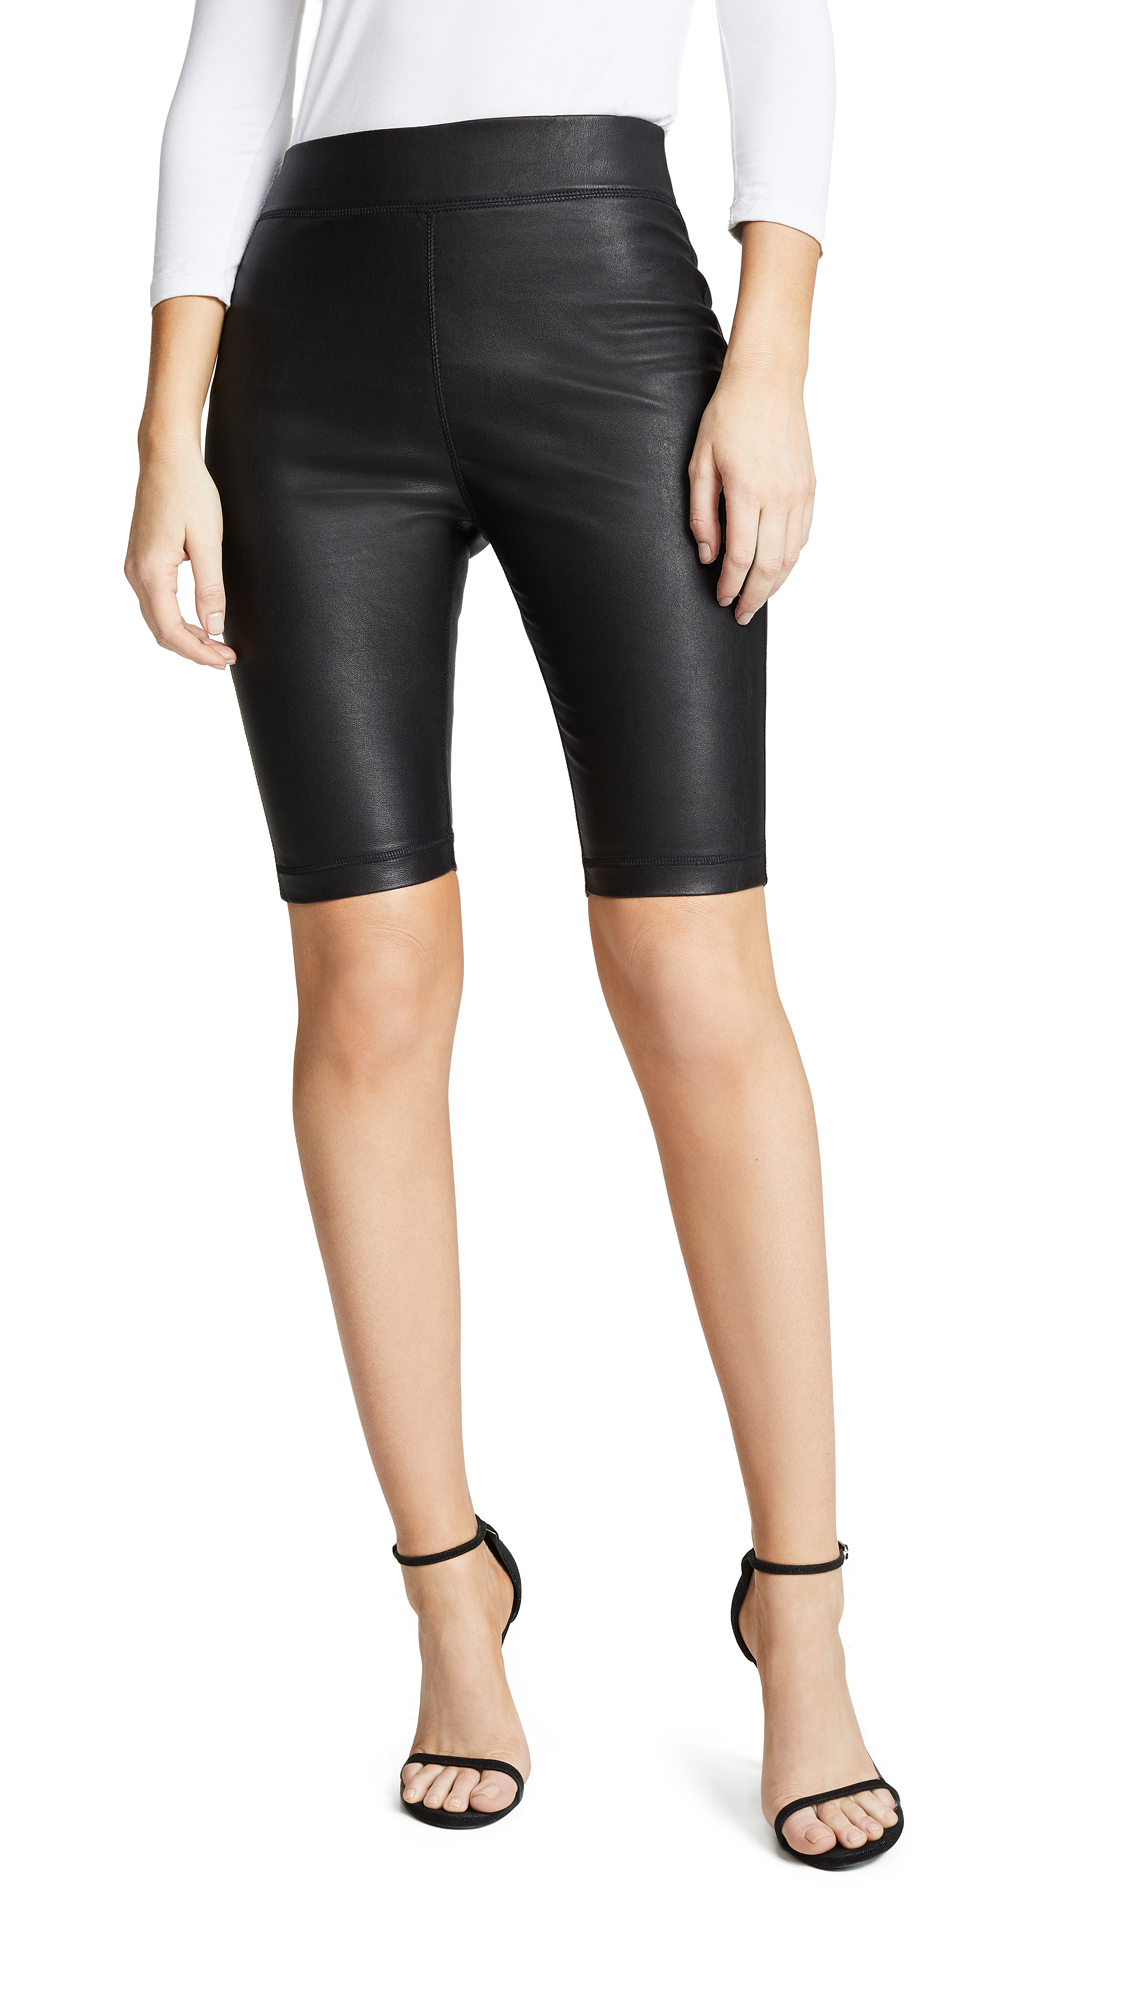 Cynthia Rowley Leather Bike Short - Black